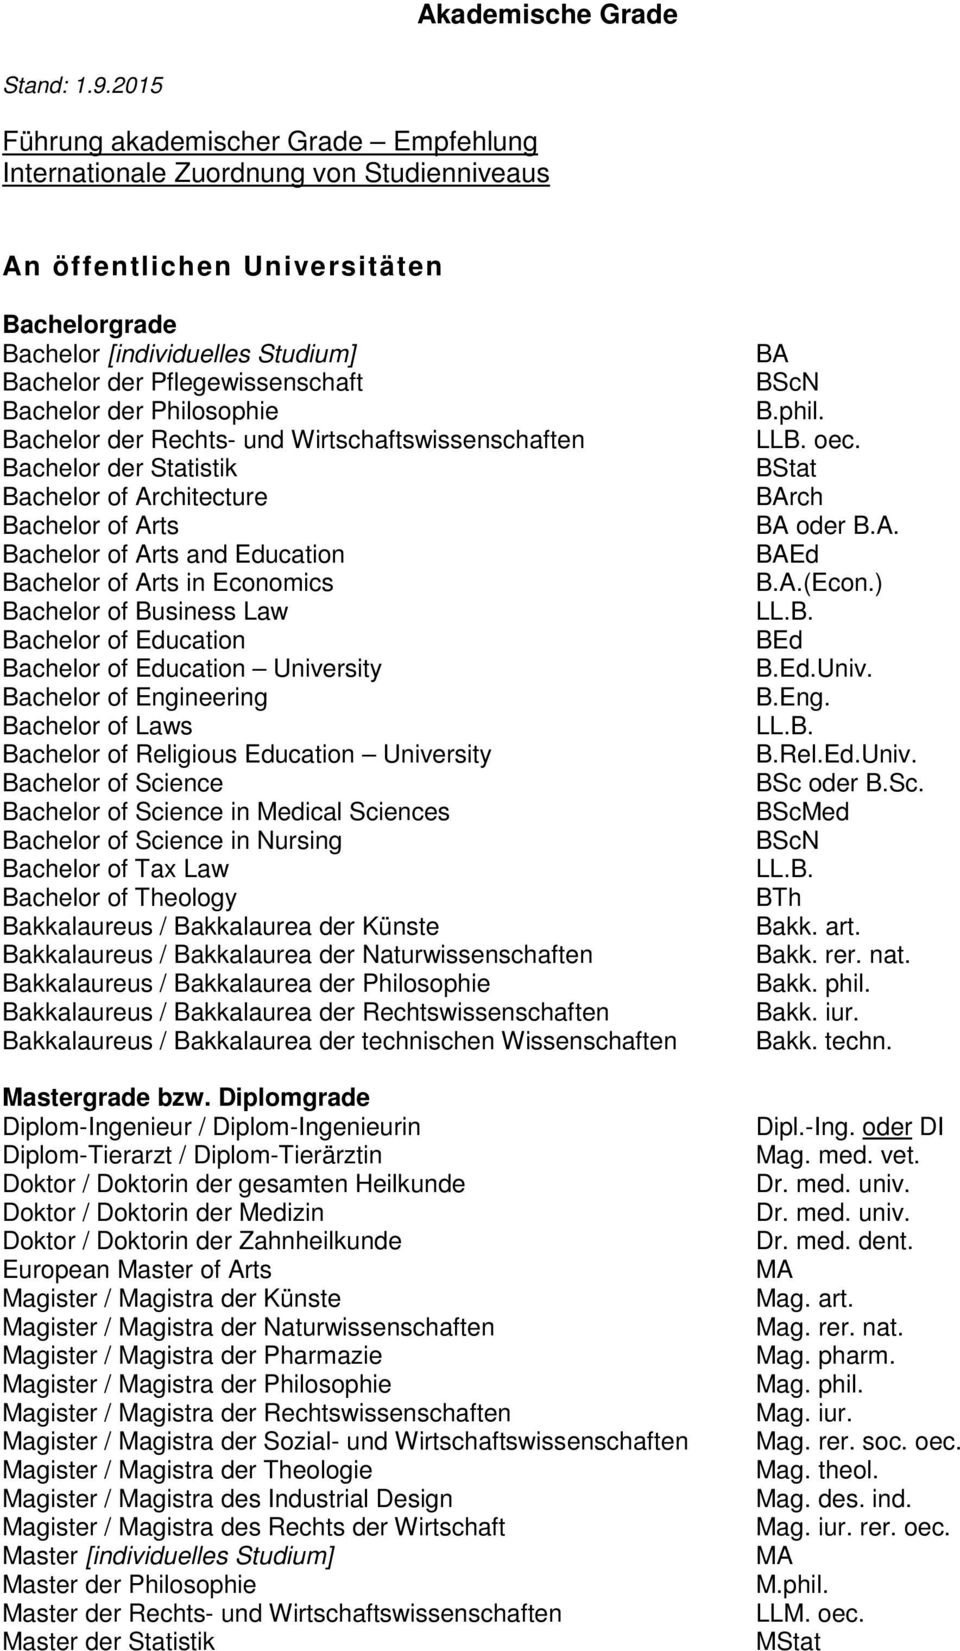 Bachelor der Philosophie Bachelor der Rechts- und Wirtschaftswissenschaften Bachelor der Statistik Bachelor of Architecture Bachelor of Arts Bachelor of Arts and Education Bachelor of Arts in